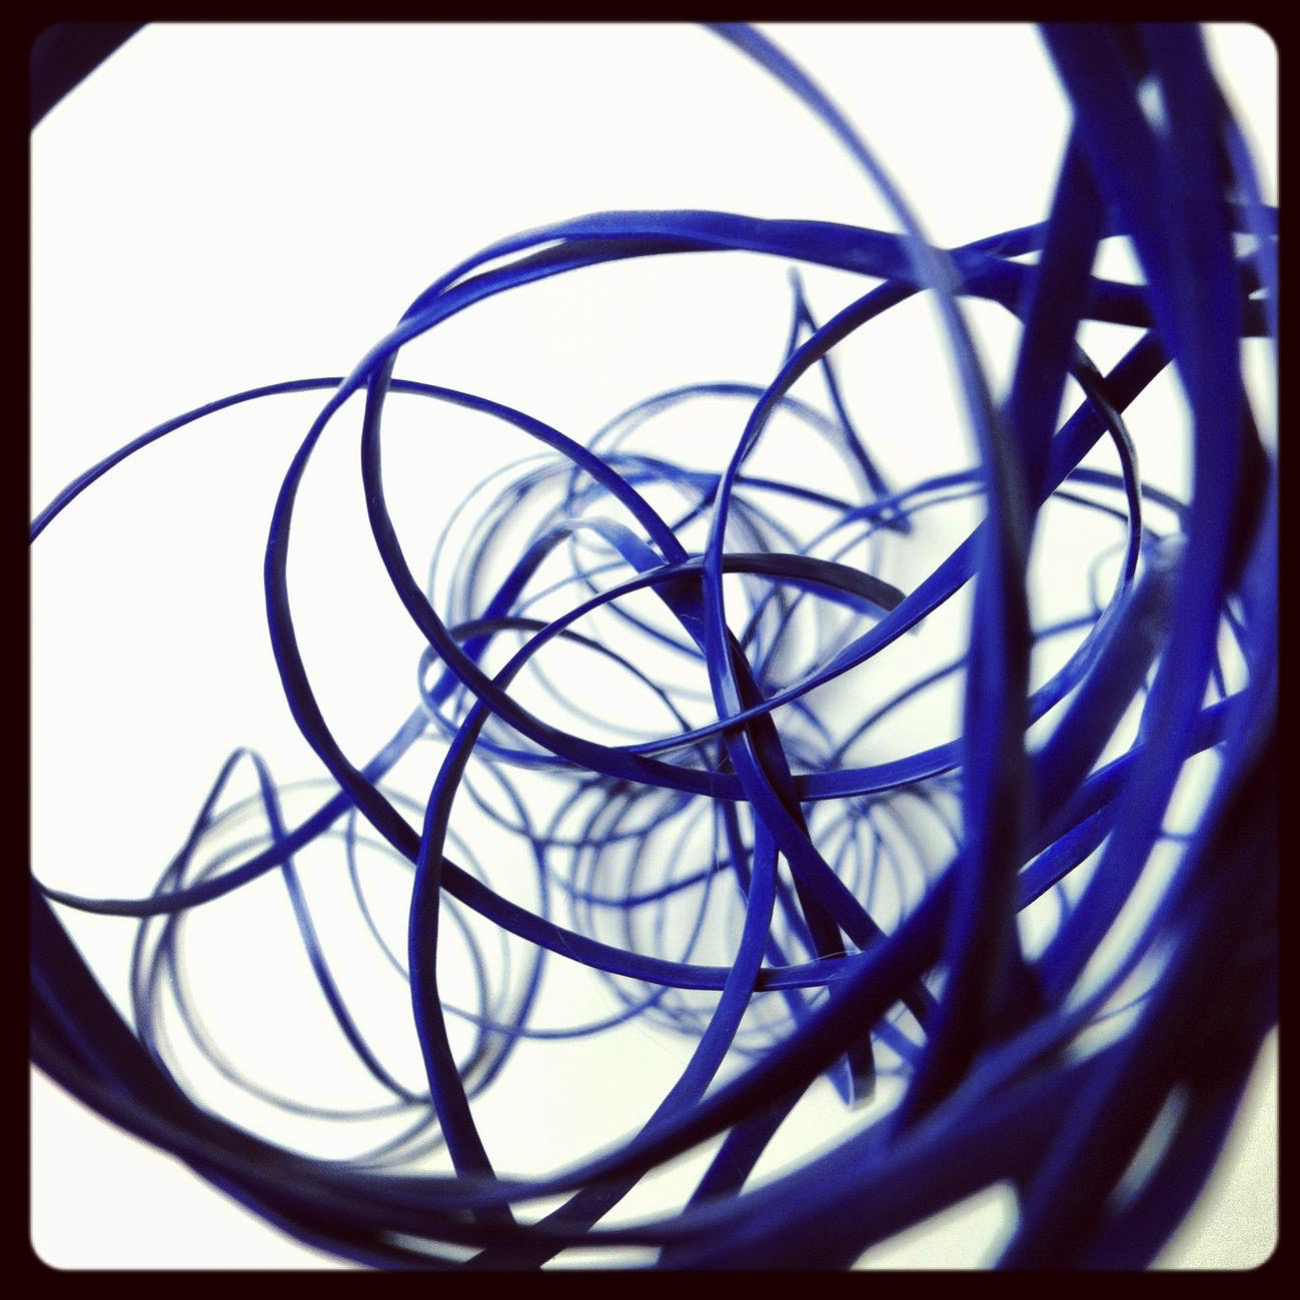 blue swirly wire or plastic